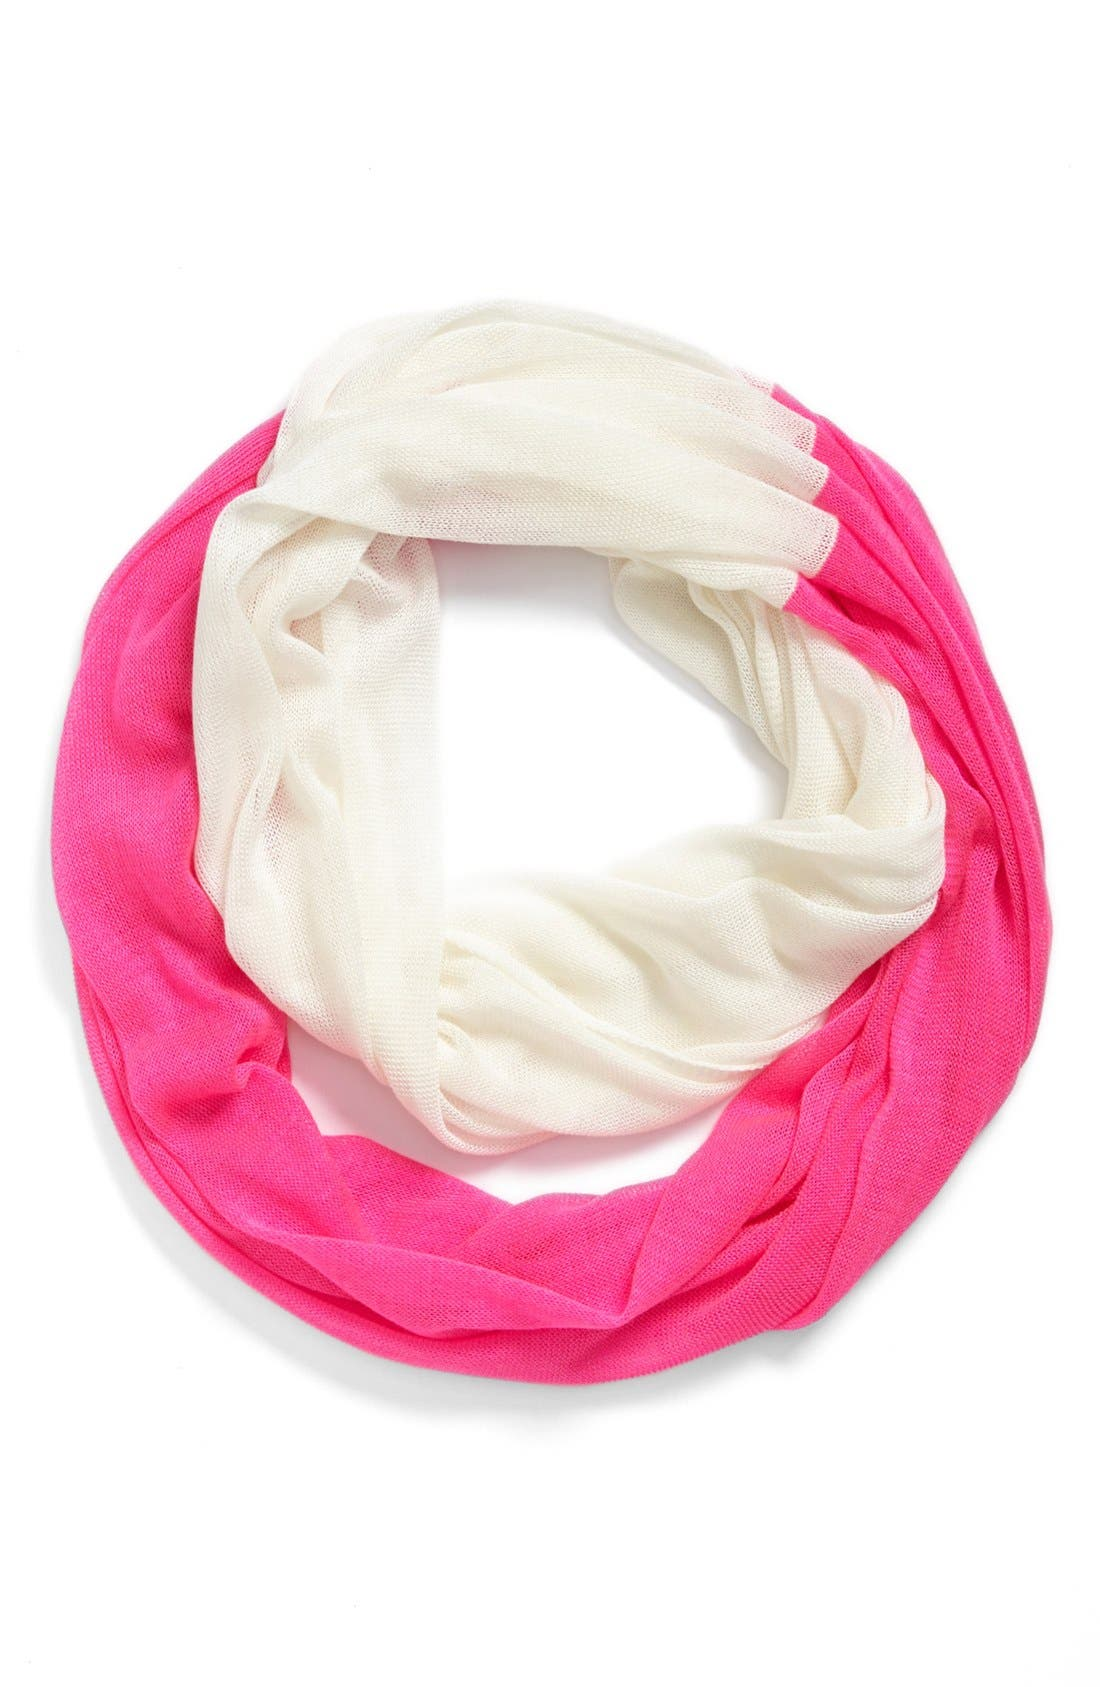 Alternate Image 1 Selected - The Accessory Collective Two Tone Infinity Scarf (Girls)